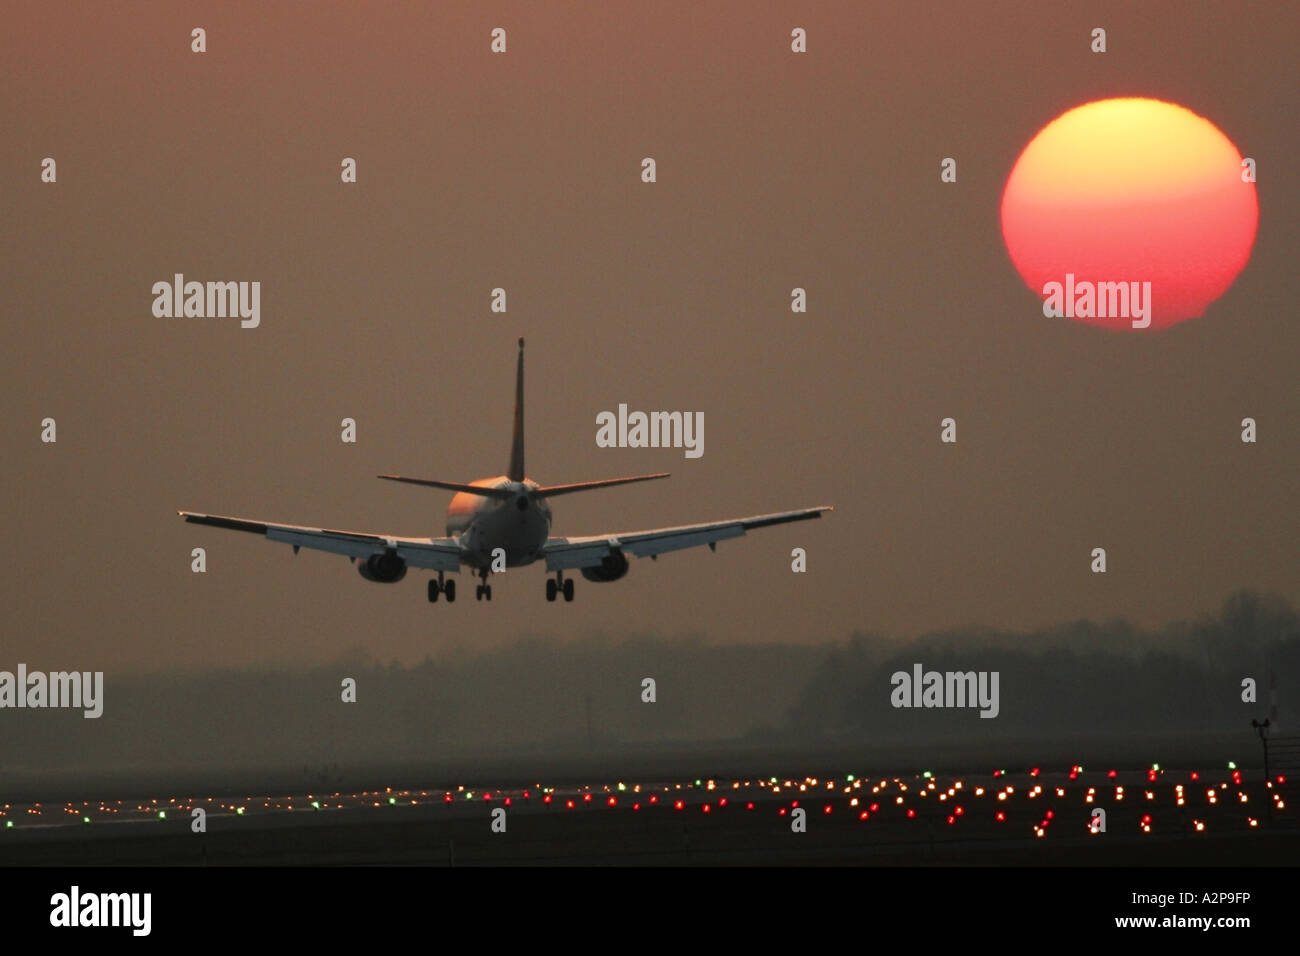 passenger airplane landing on airport Munich at sunset, Germany, Bavaria, Munich - Stock Image